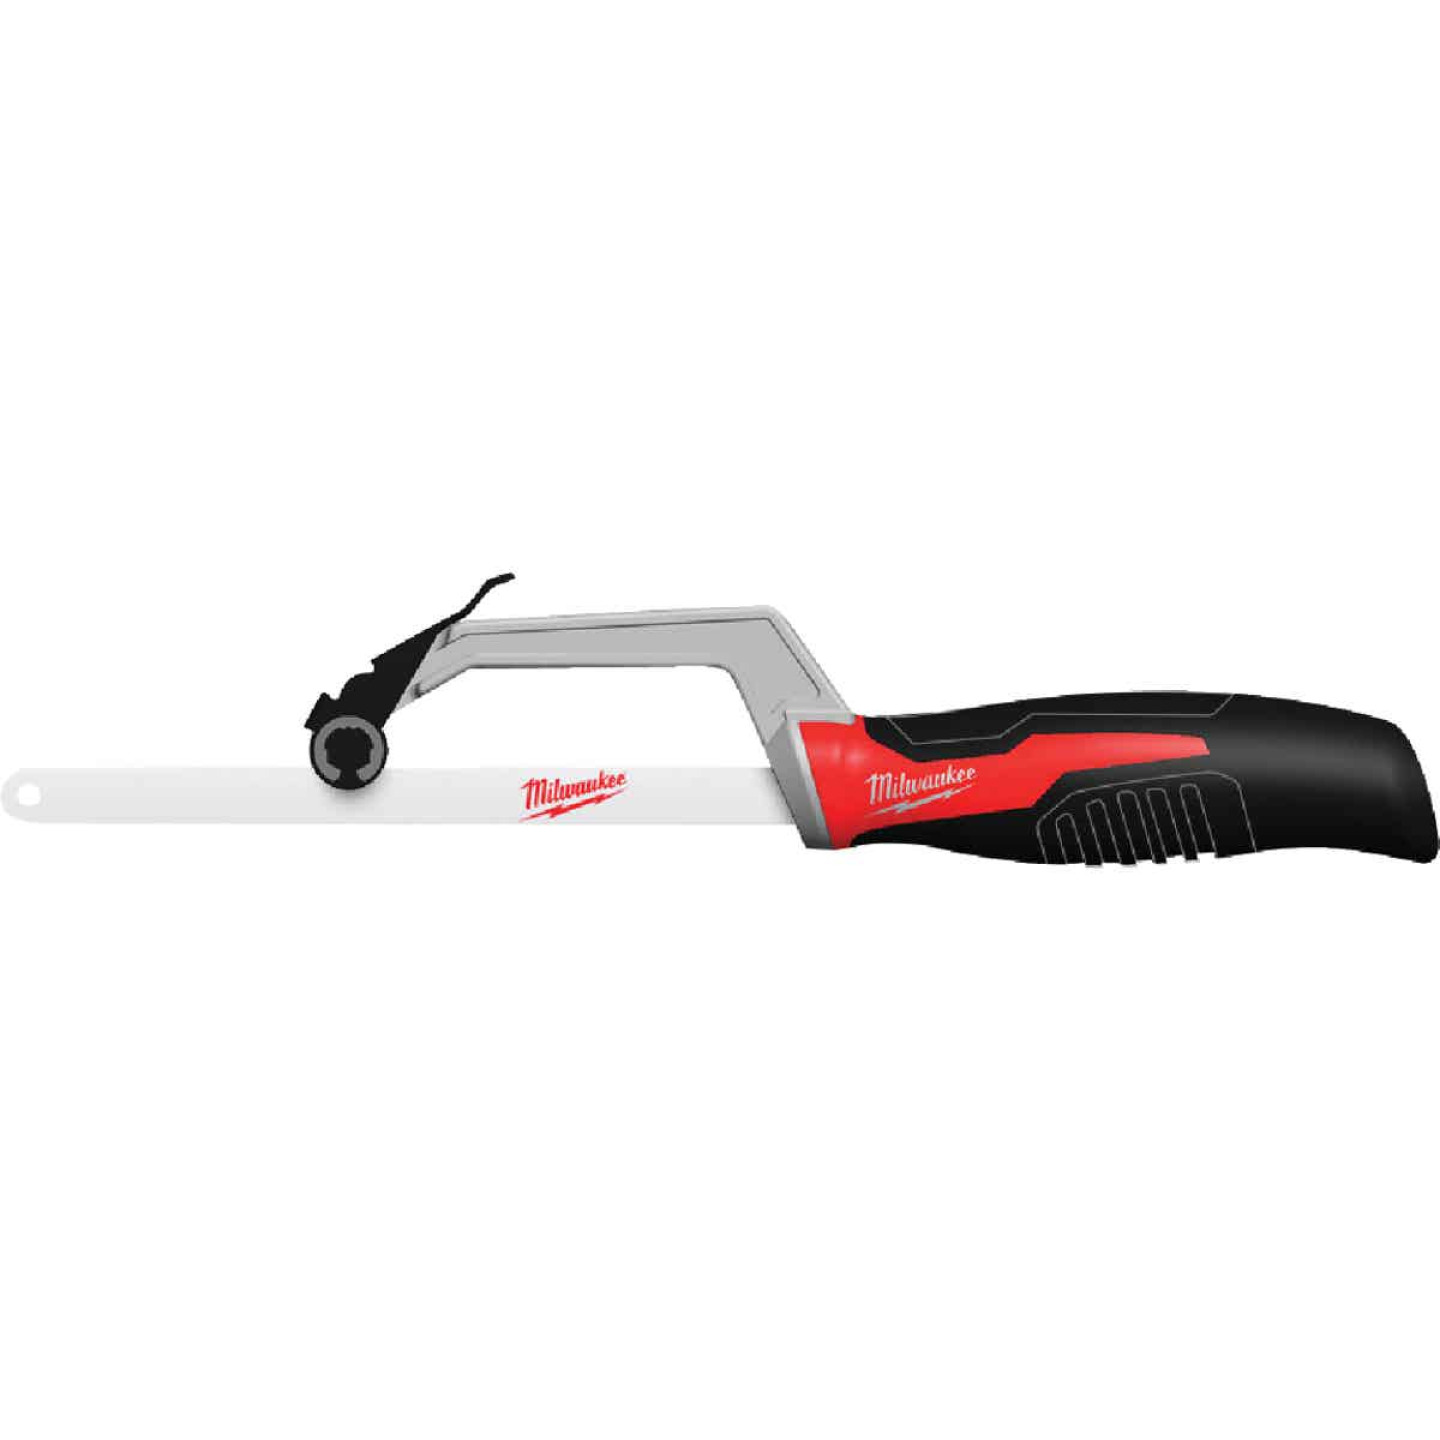 Milwaukee 10 In. Mini Hacksaw Image 1